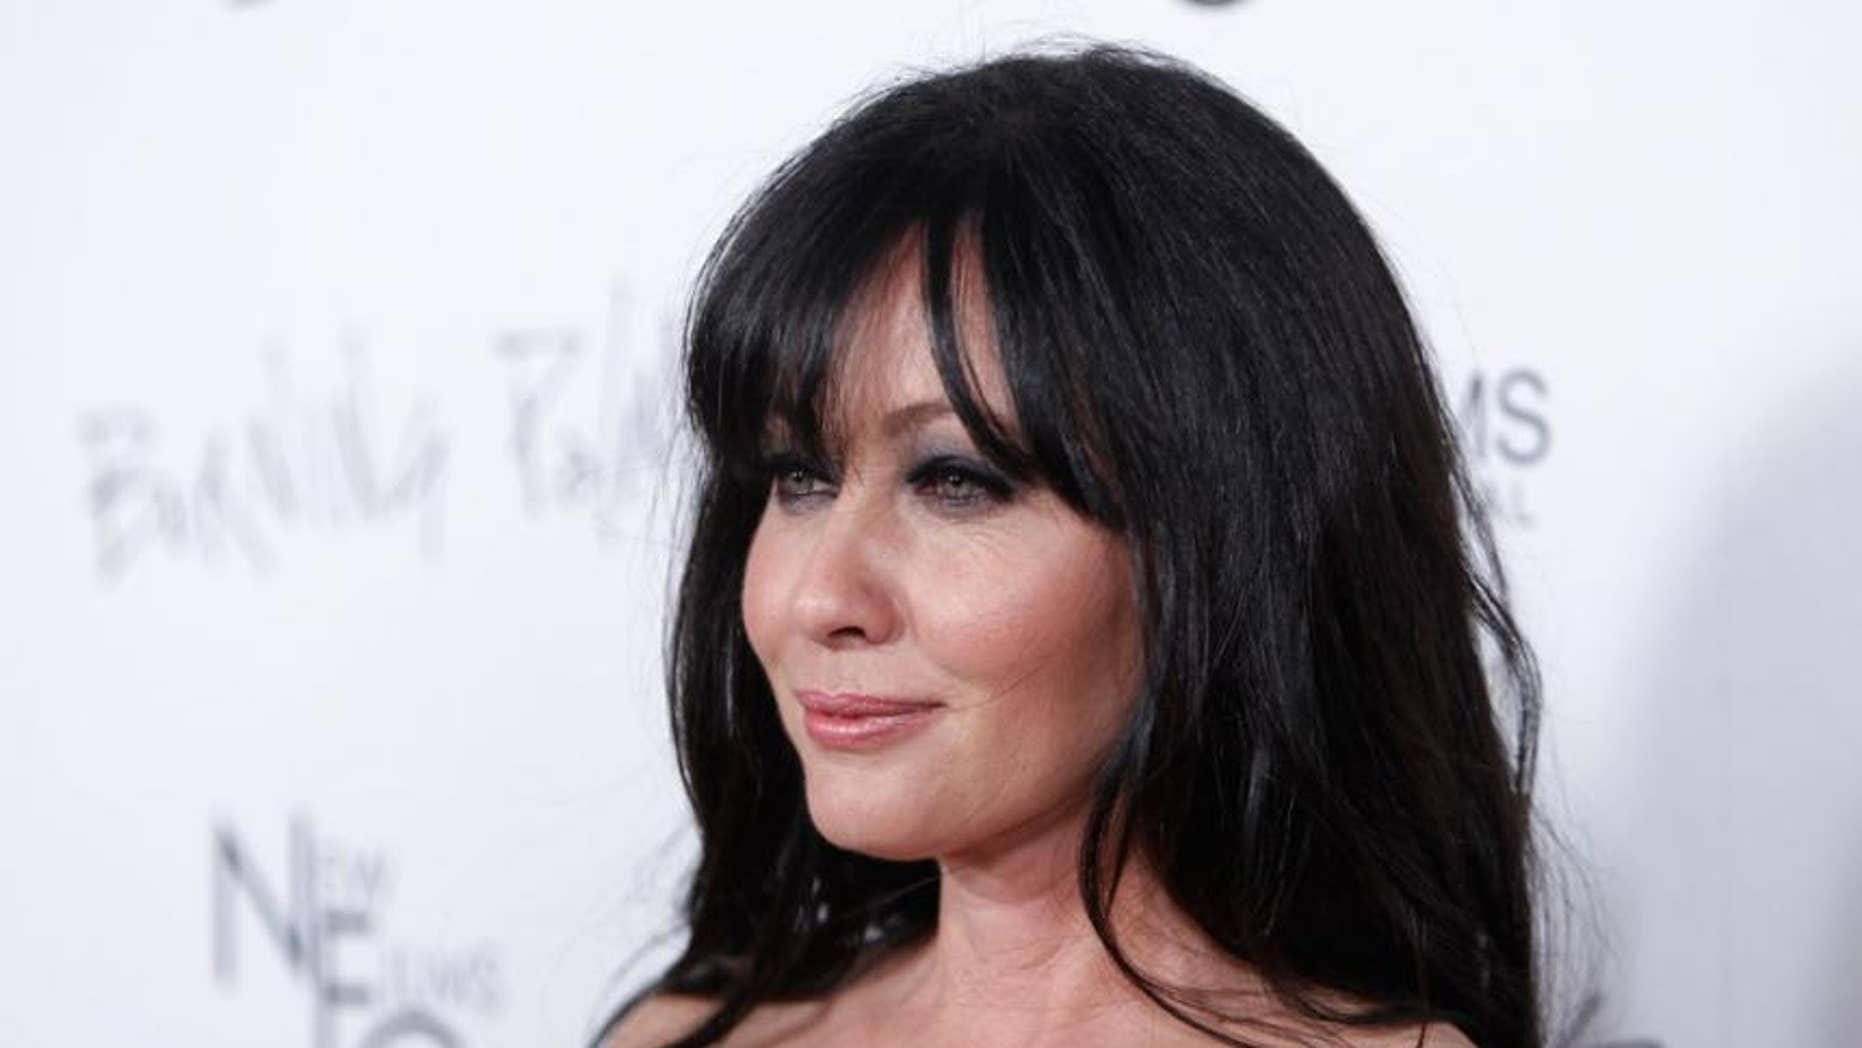 Actress Shannen Doherty opened up to Health magazine about her battle with breast cancer for the outlet's March cover issue.